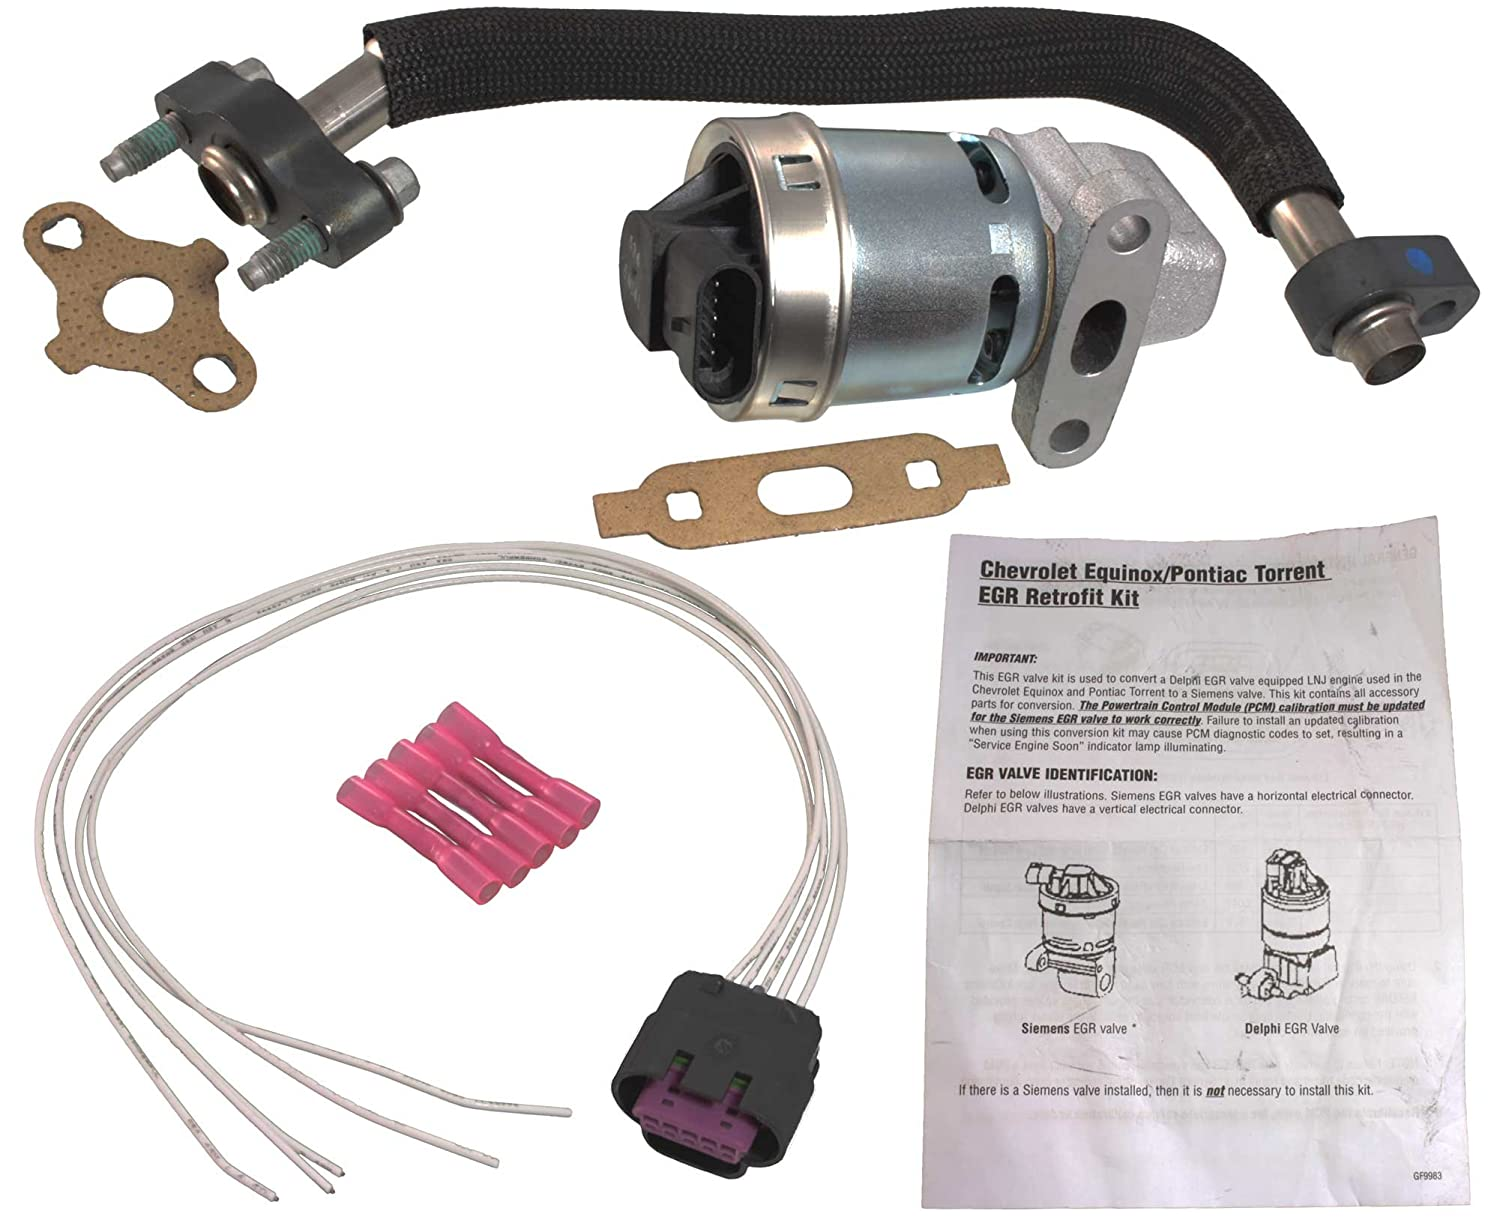 81DxAzQDi4L._SL1500_ amazon com apdty 112800 egr upgrade kit includes new egr valve 2006 pontiac torrent wiring harness at n-0.co